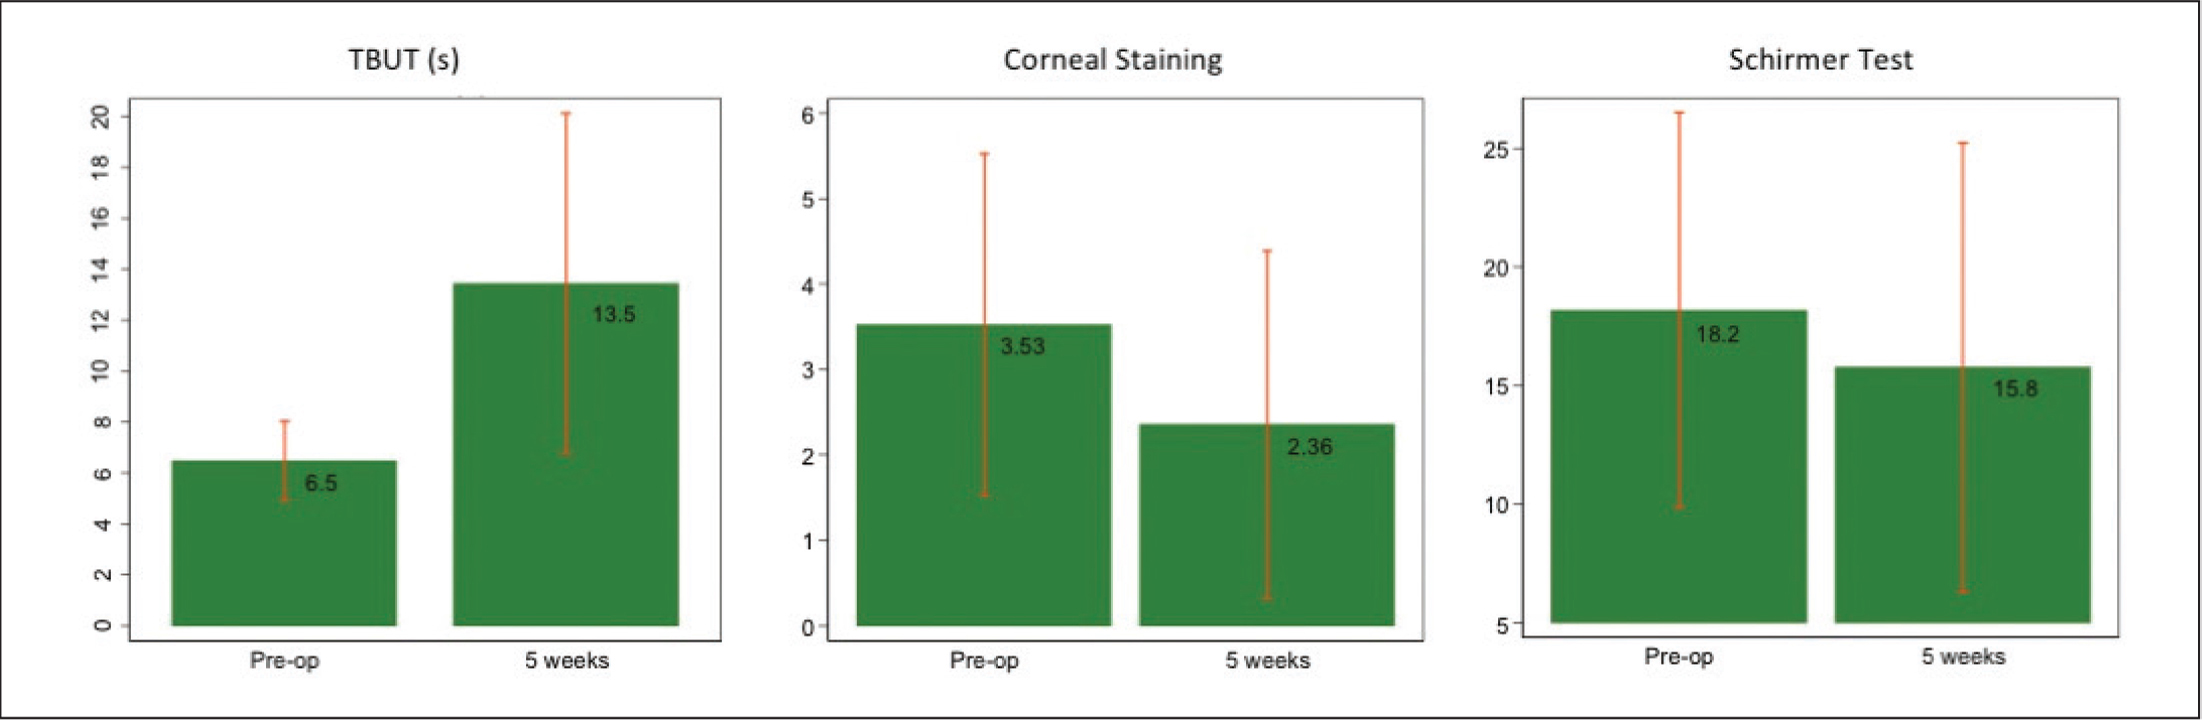 Mean values of tear break-up time (TBUT), corneal staining, and Schirmer test measured preoperatively and at 5 weeks postoperatively.